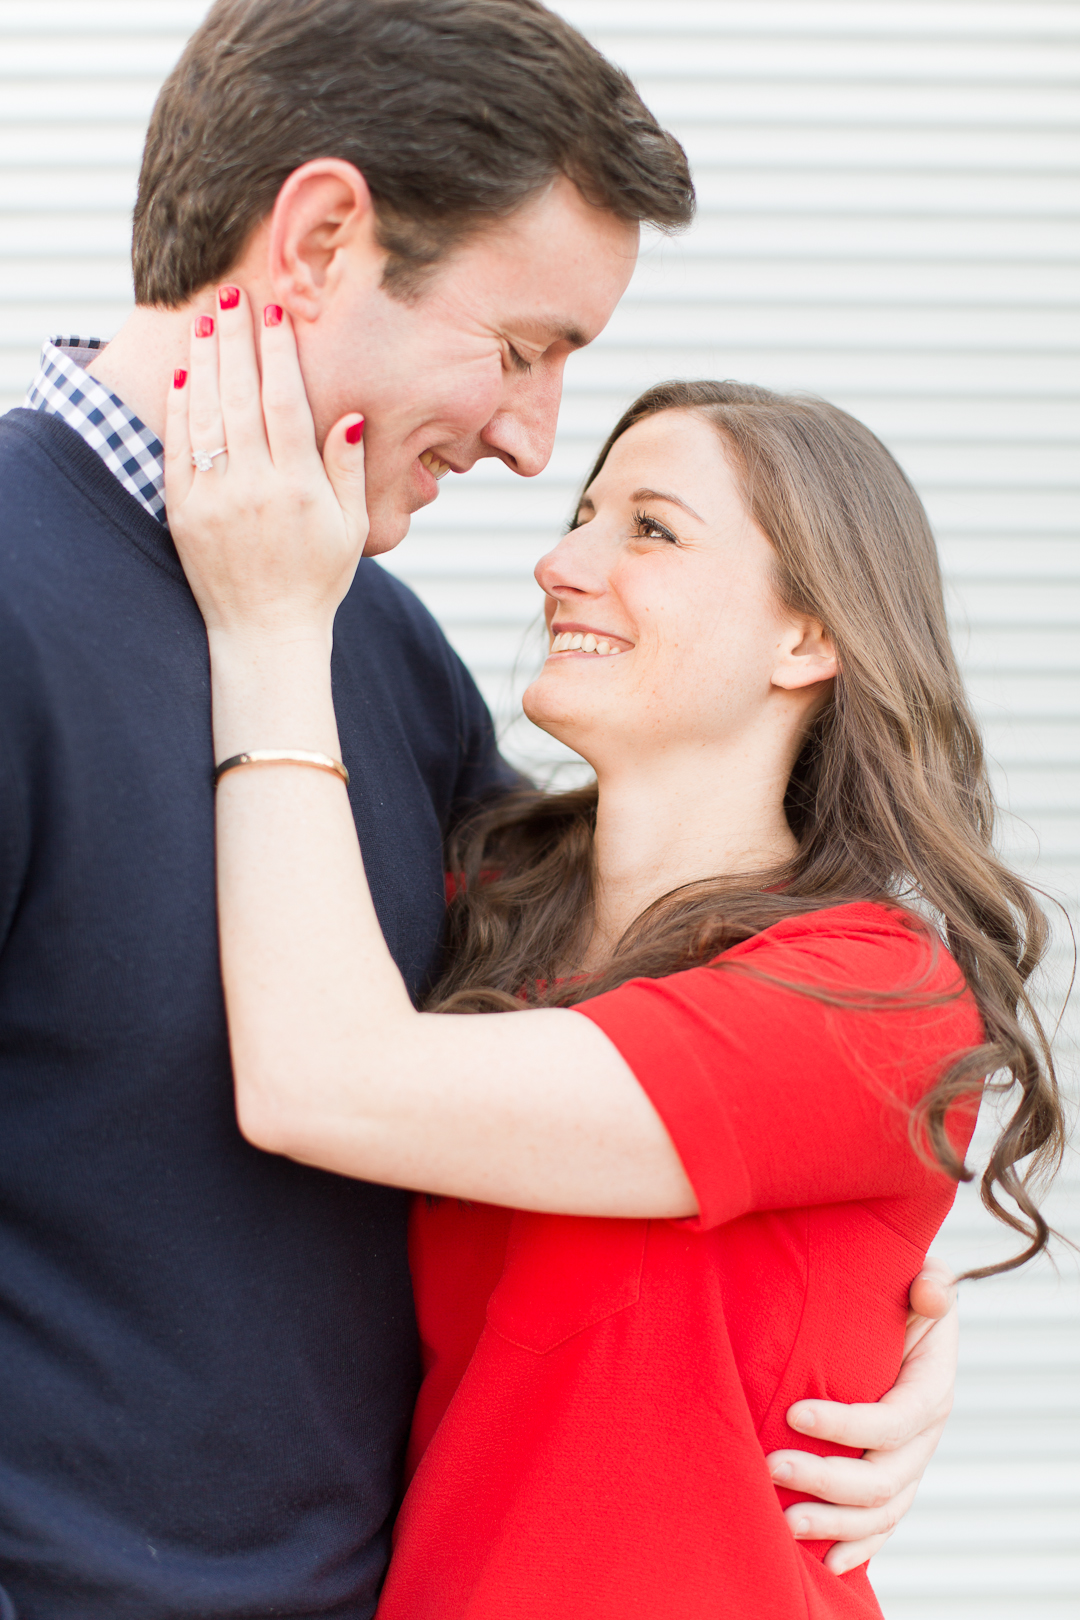 Melissa Kruse Photography - Tess & Brendan Engagement Photos-7.jpg